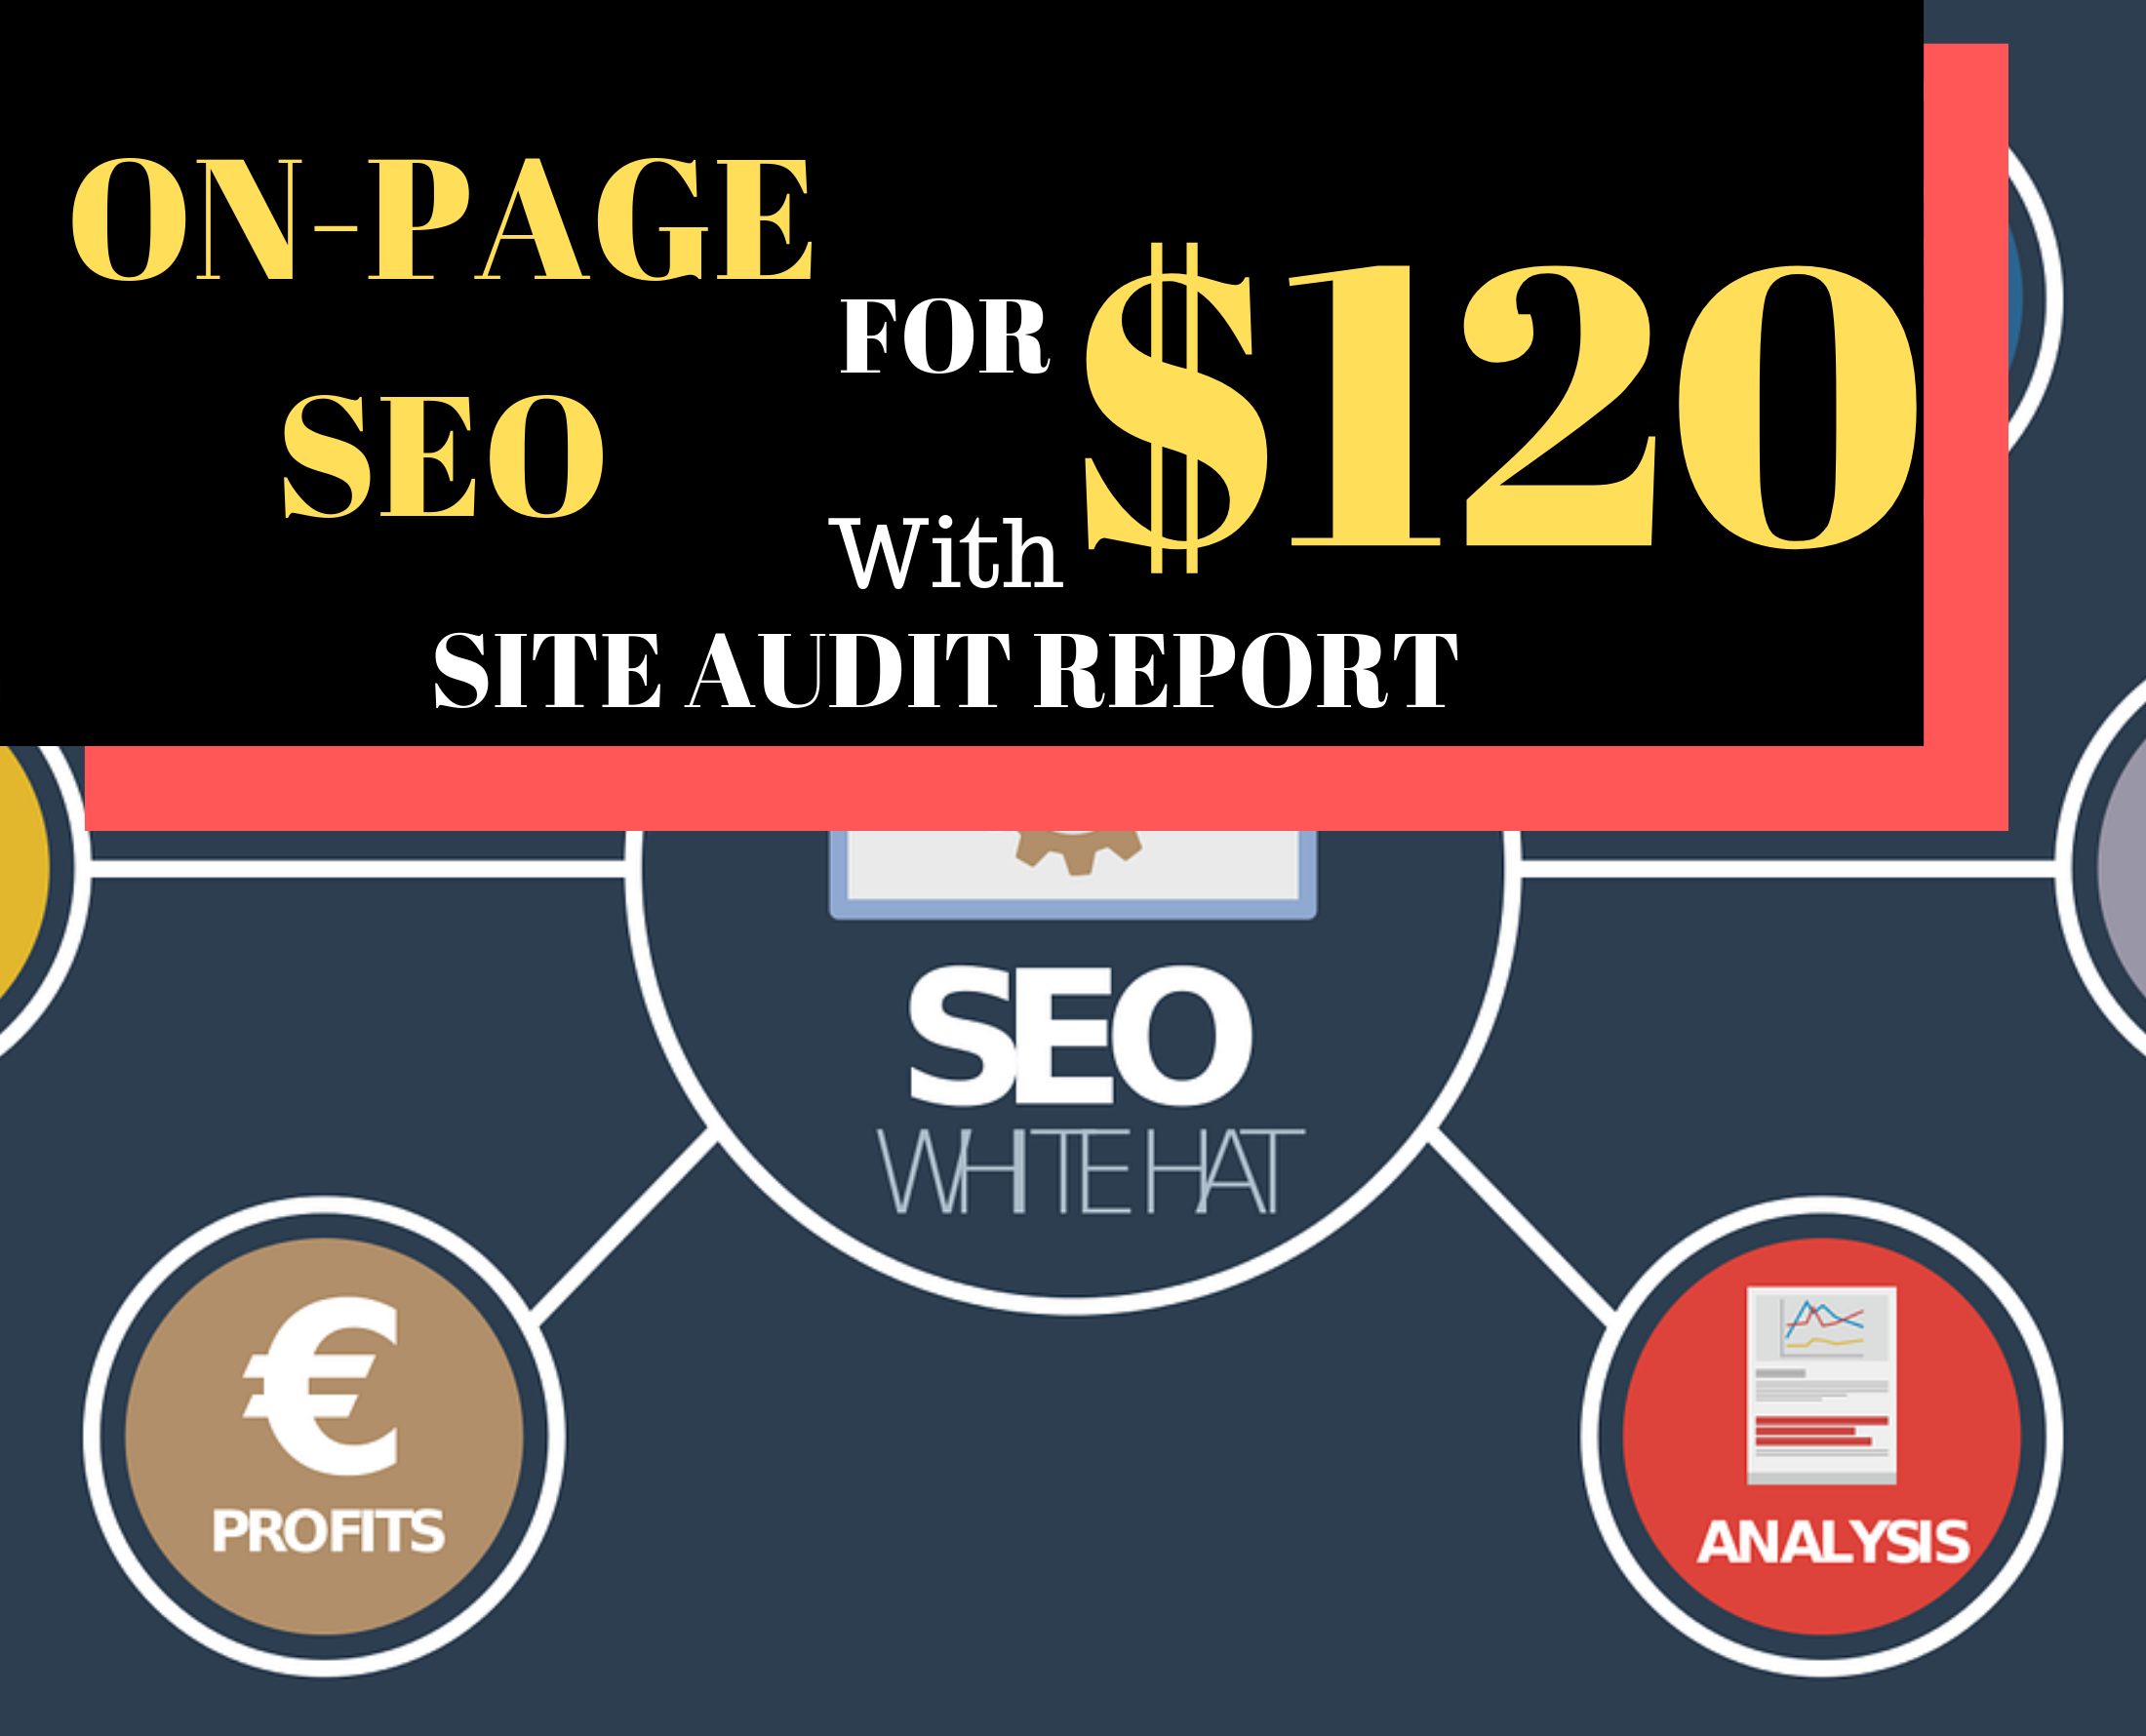 Complete ON-PAGE SEO, SEO AUDIT, 2 DAY DELIVERY